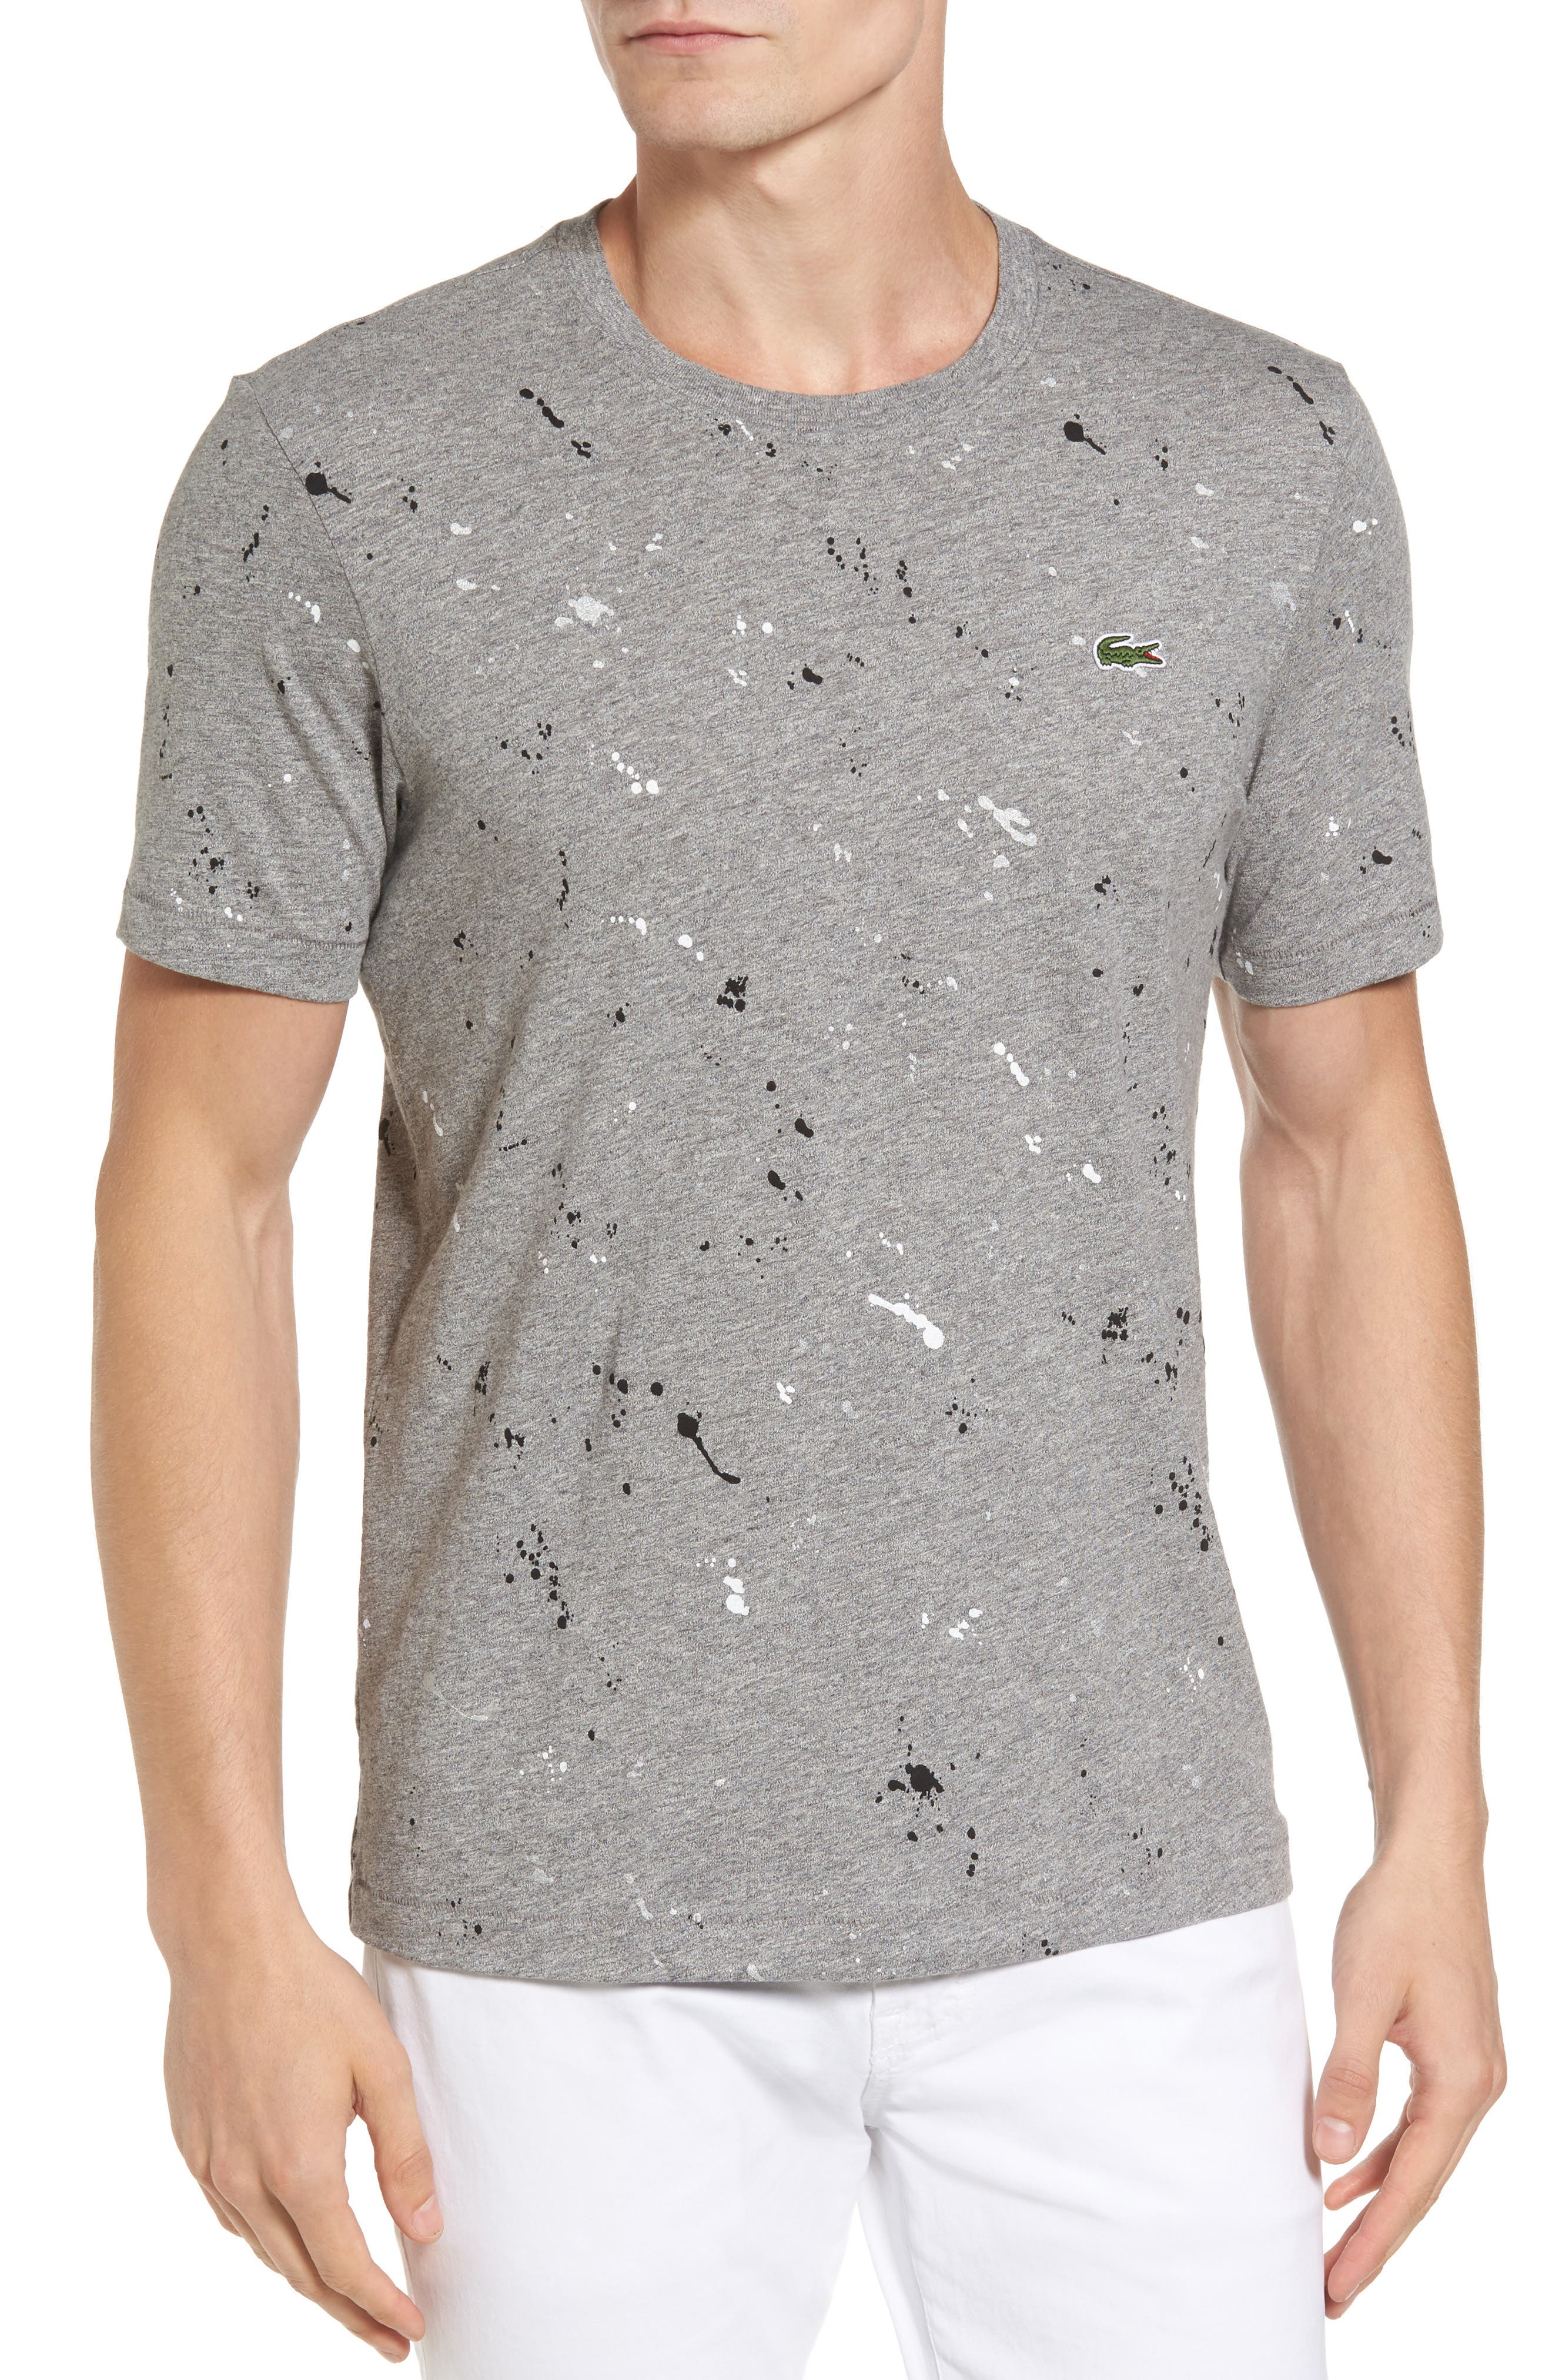 Lacoste L!VE Splatter Print Graphic T-Shirt